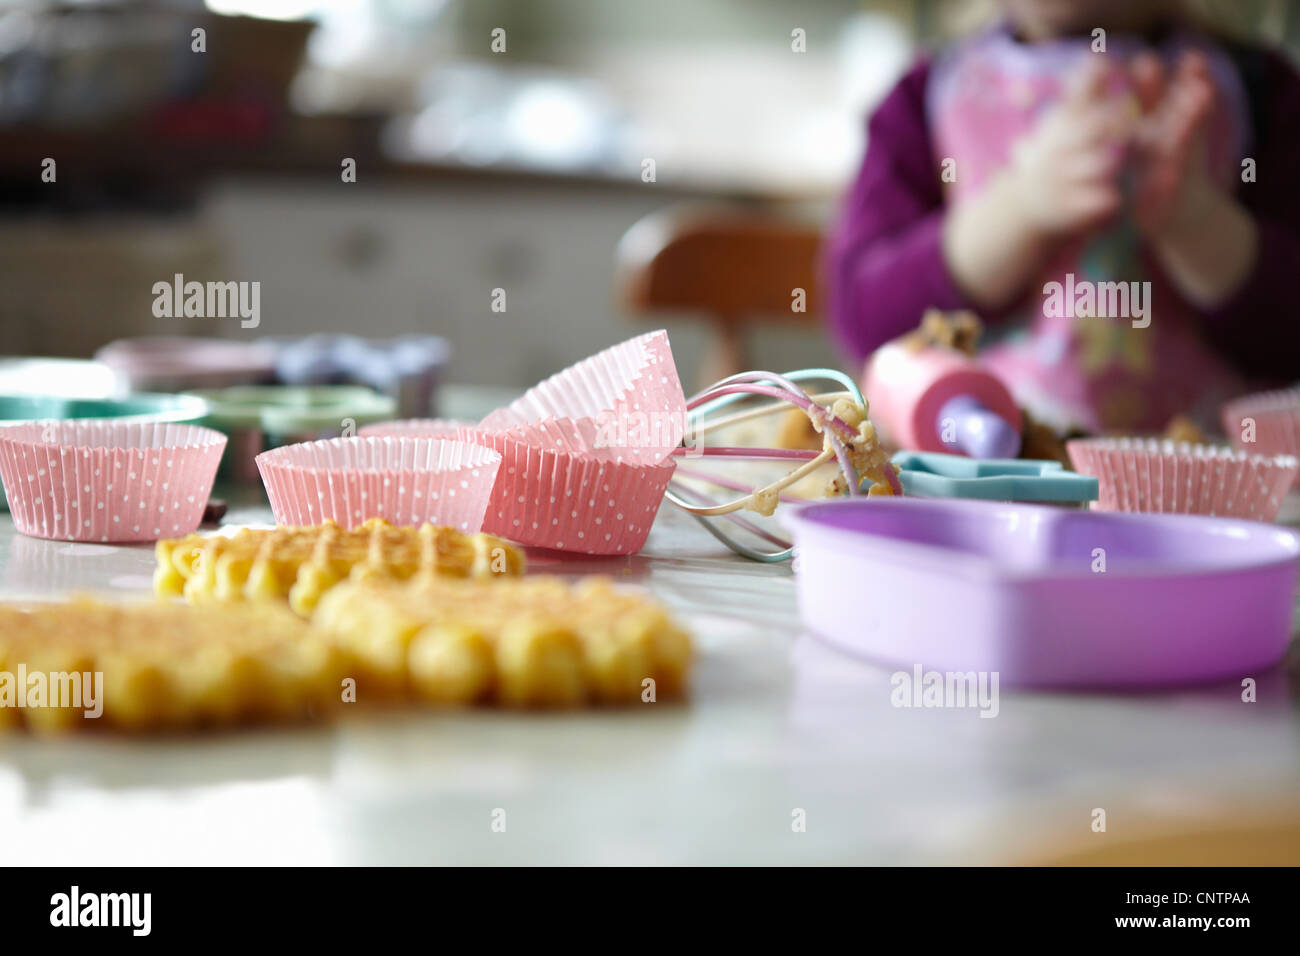 Close up of cupcake wrappers in kitchen - Stock Image